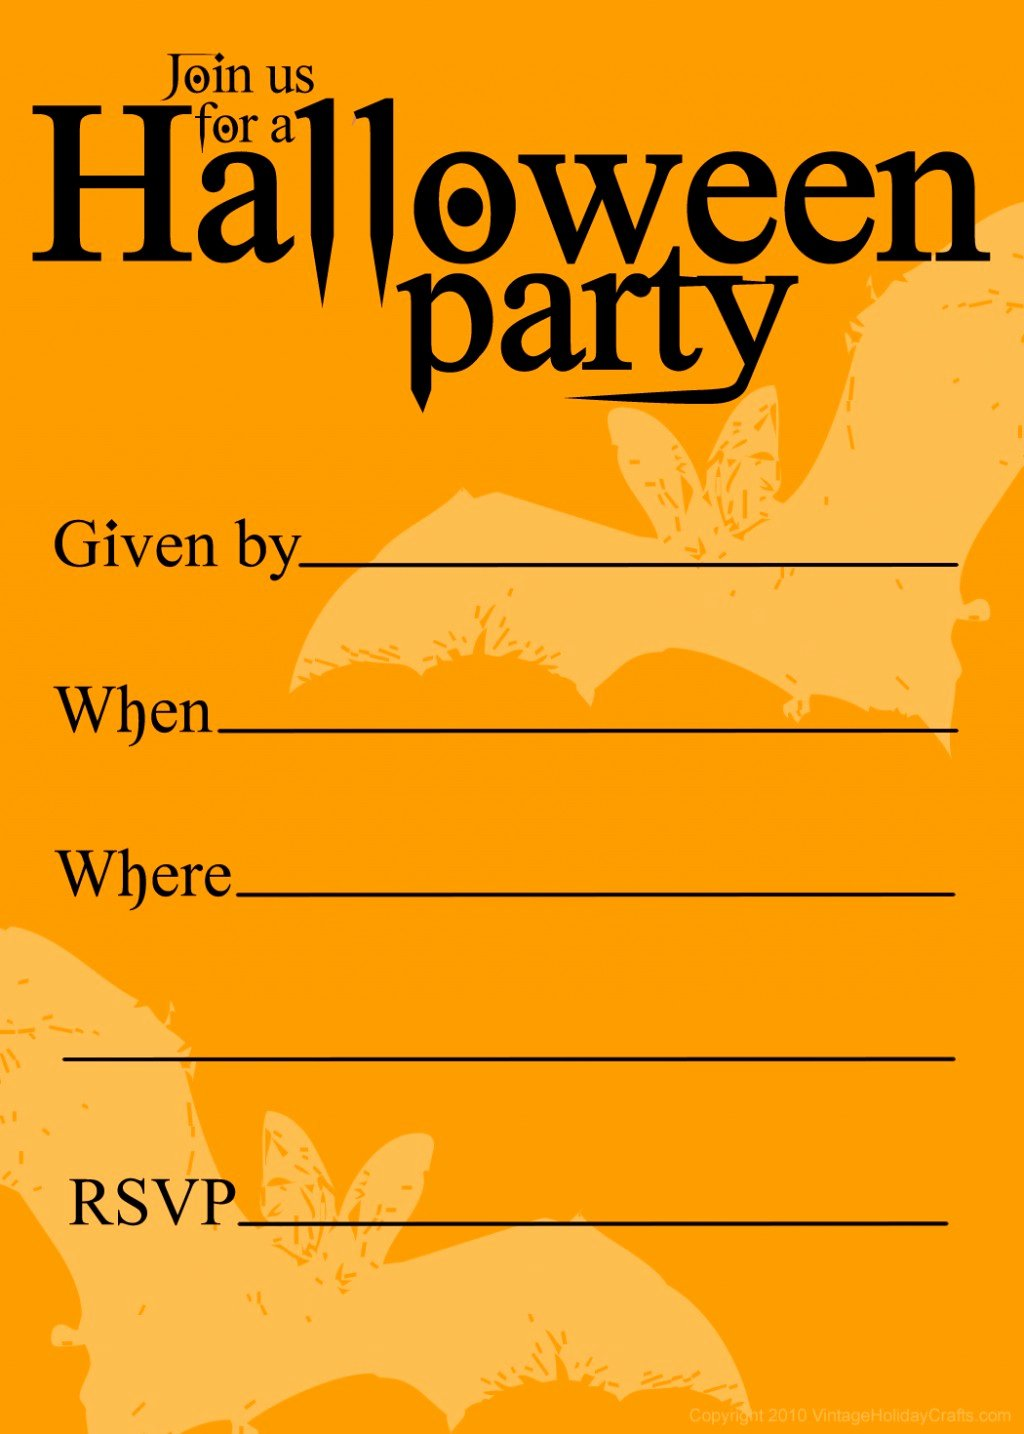 Halloween Party Invite Template New Free Printable Halloween Party Invitations